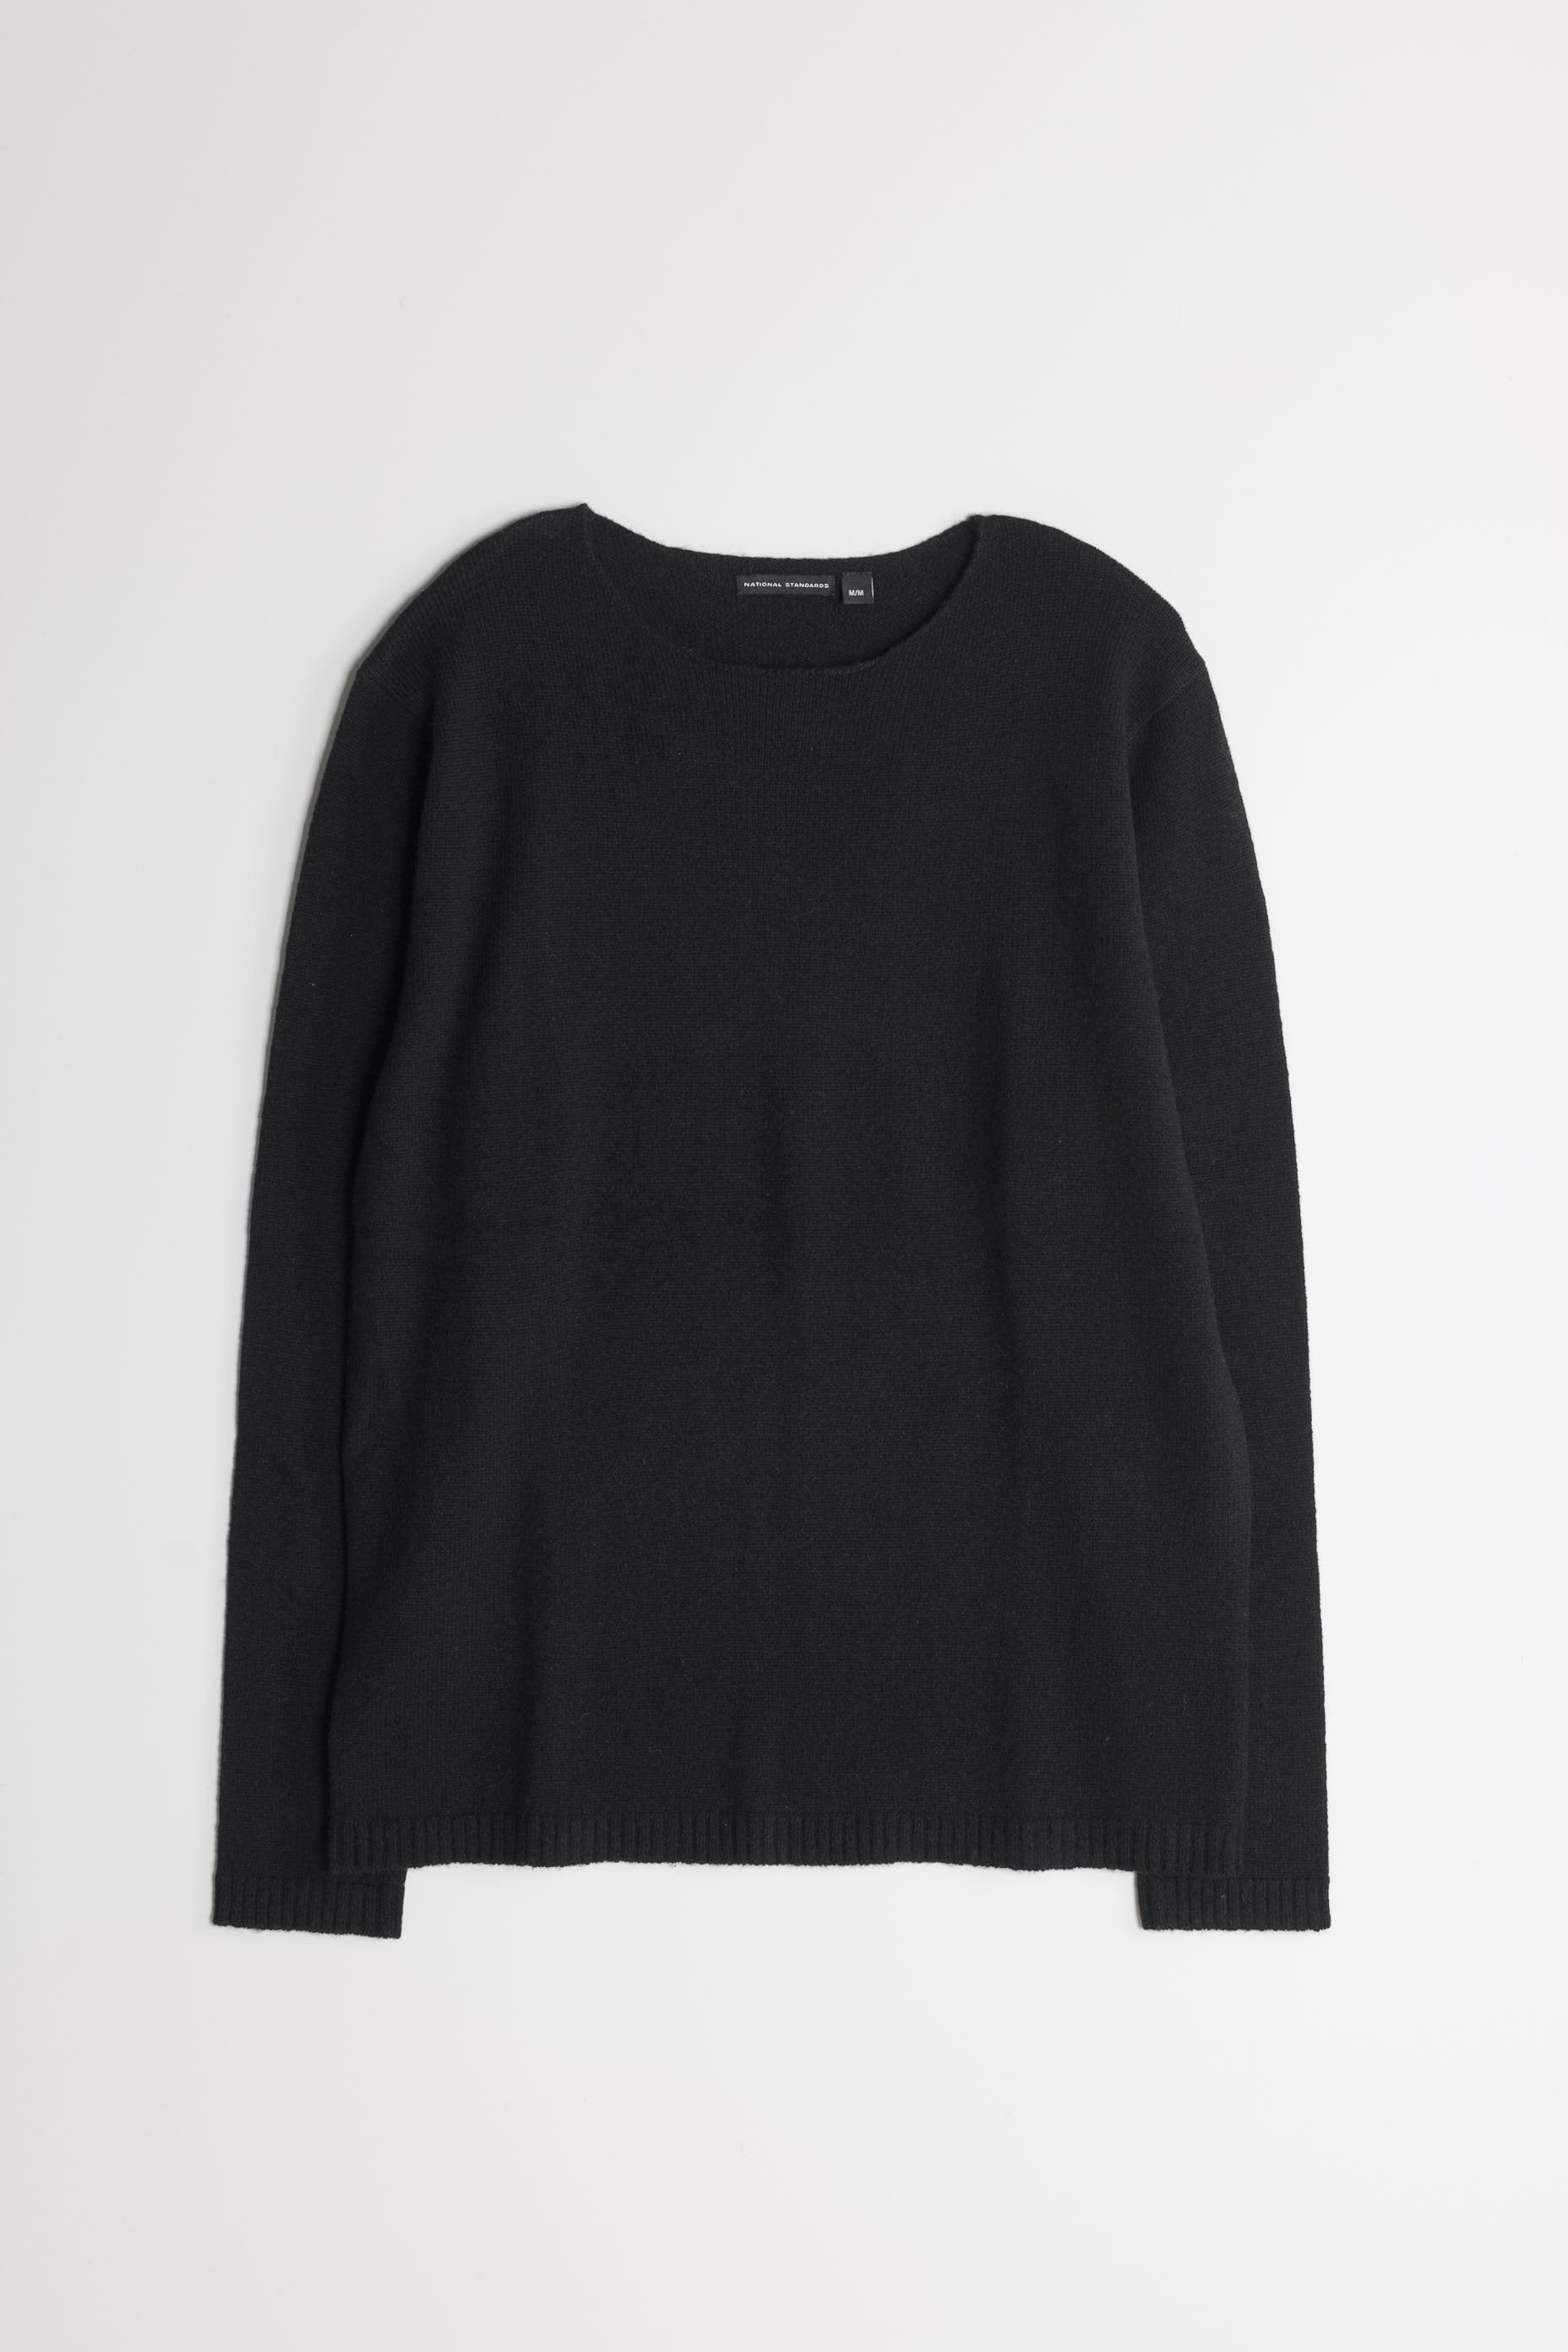 Lambswool Wide Neck in Black 01